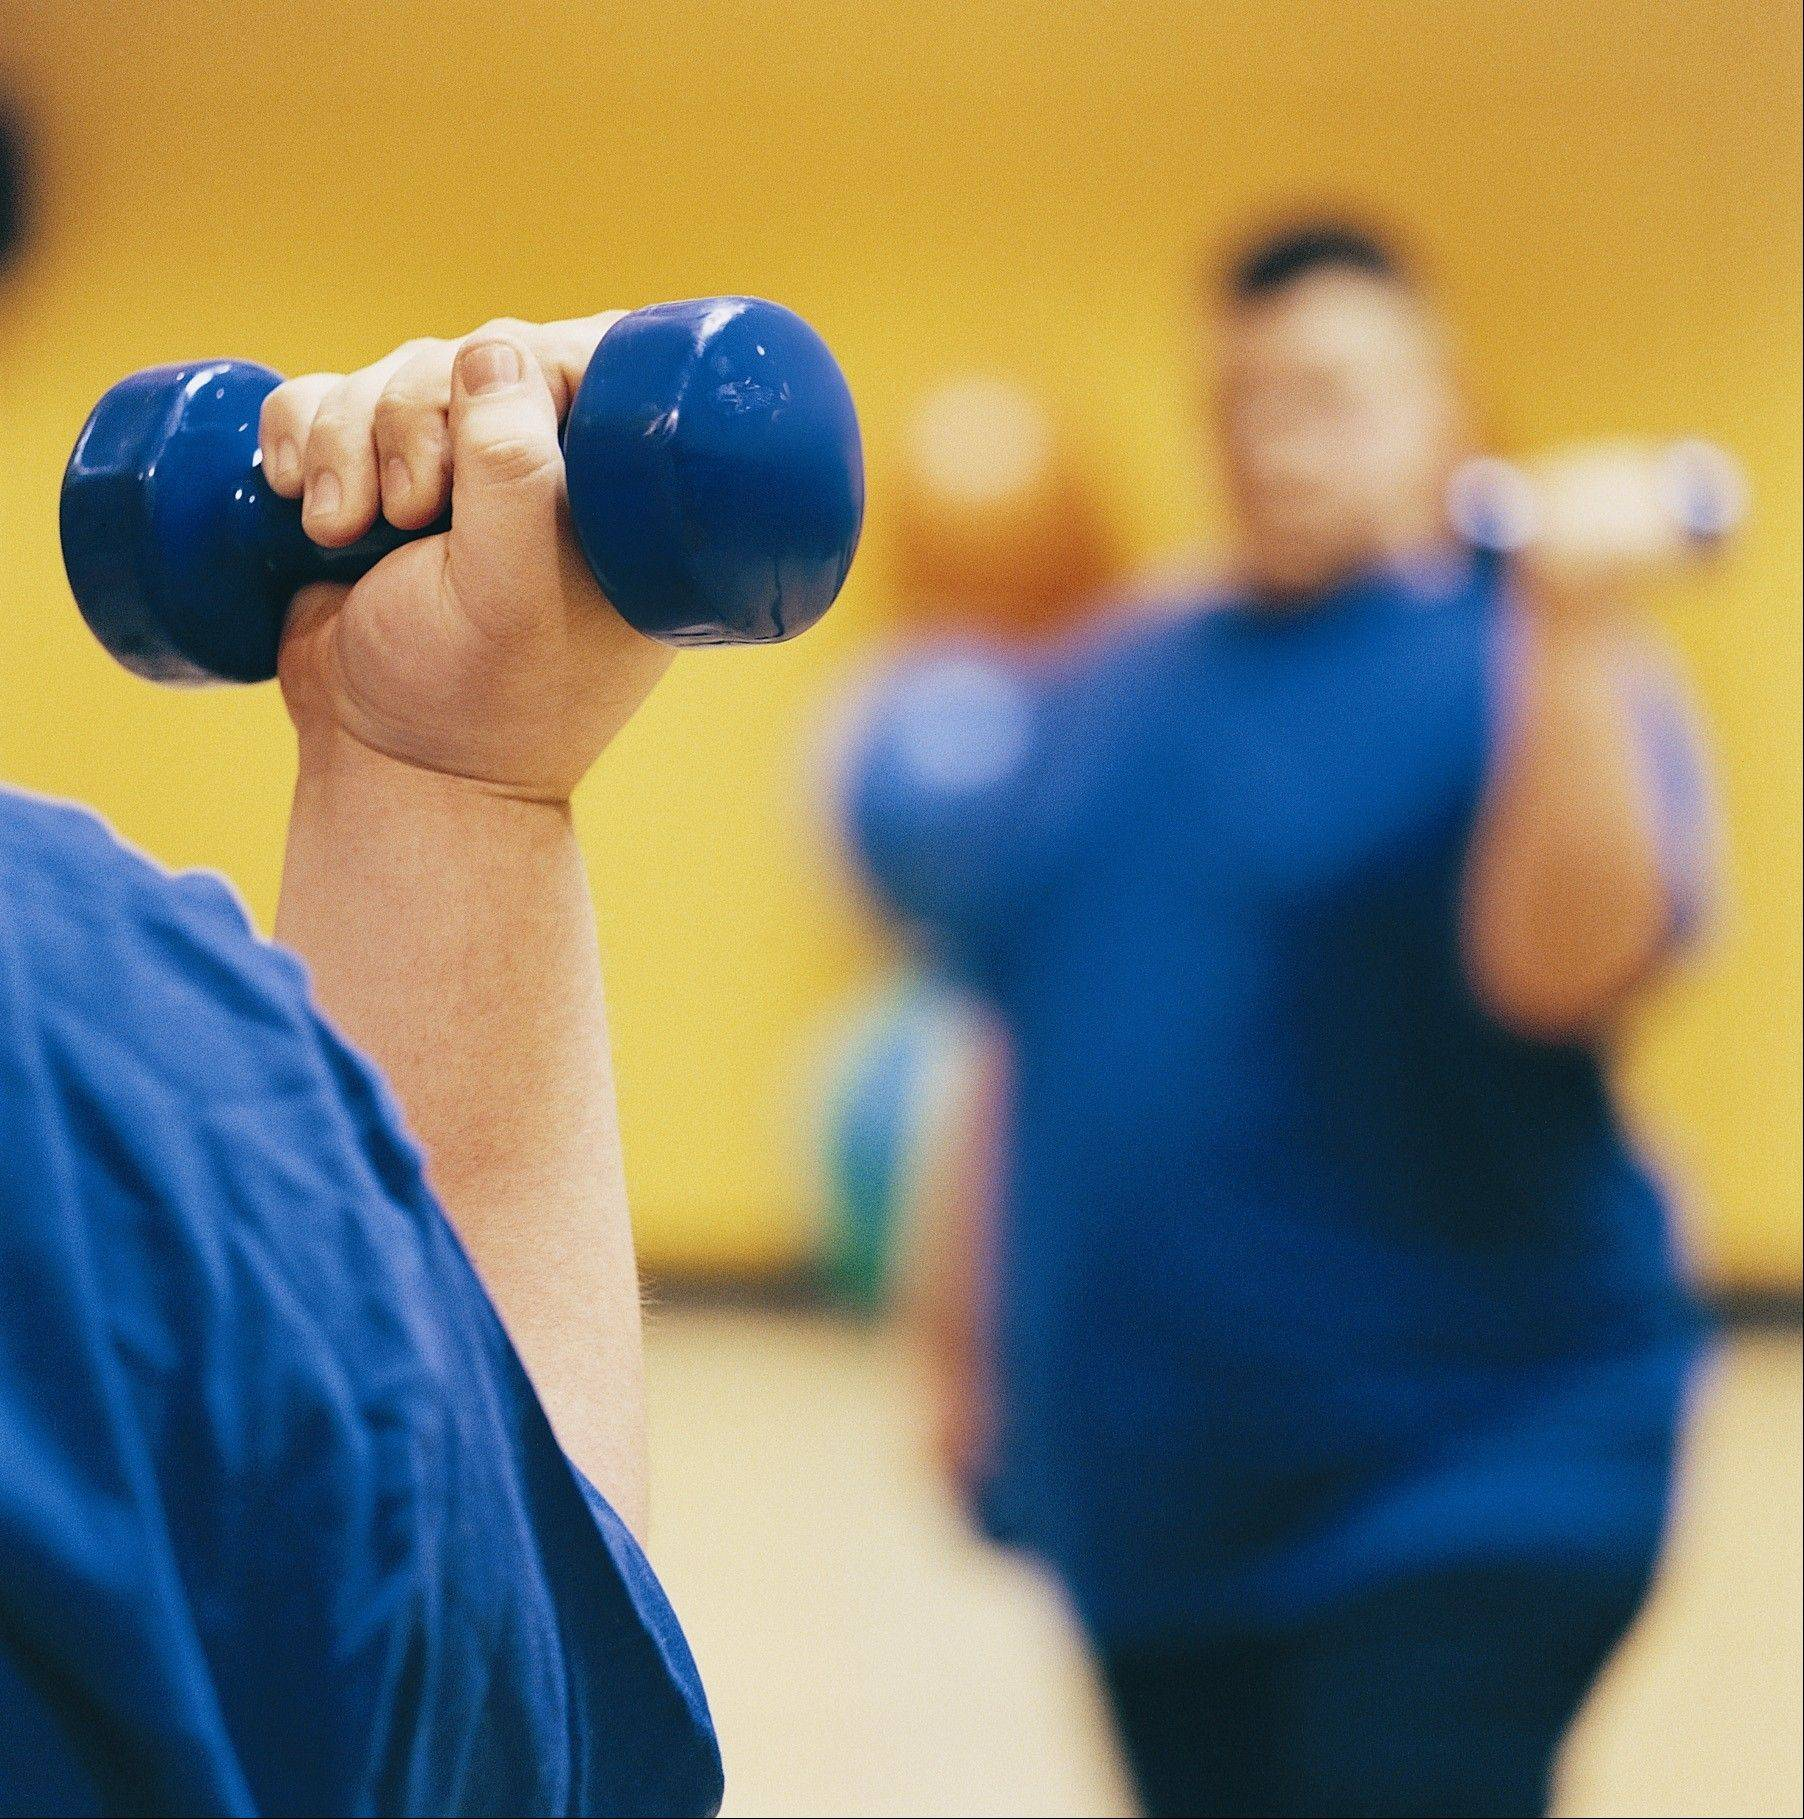 Exercising and building muscle is the best way to combat excess fat that might harm your health.